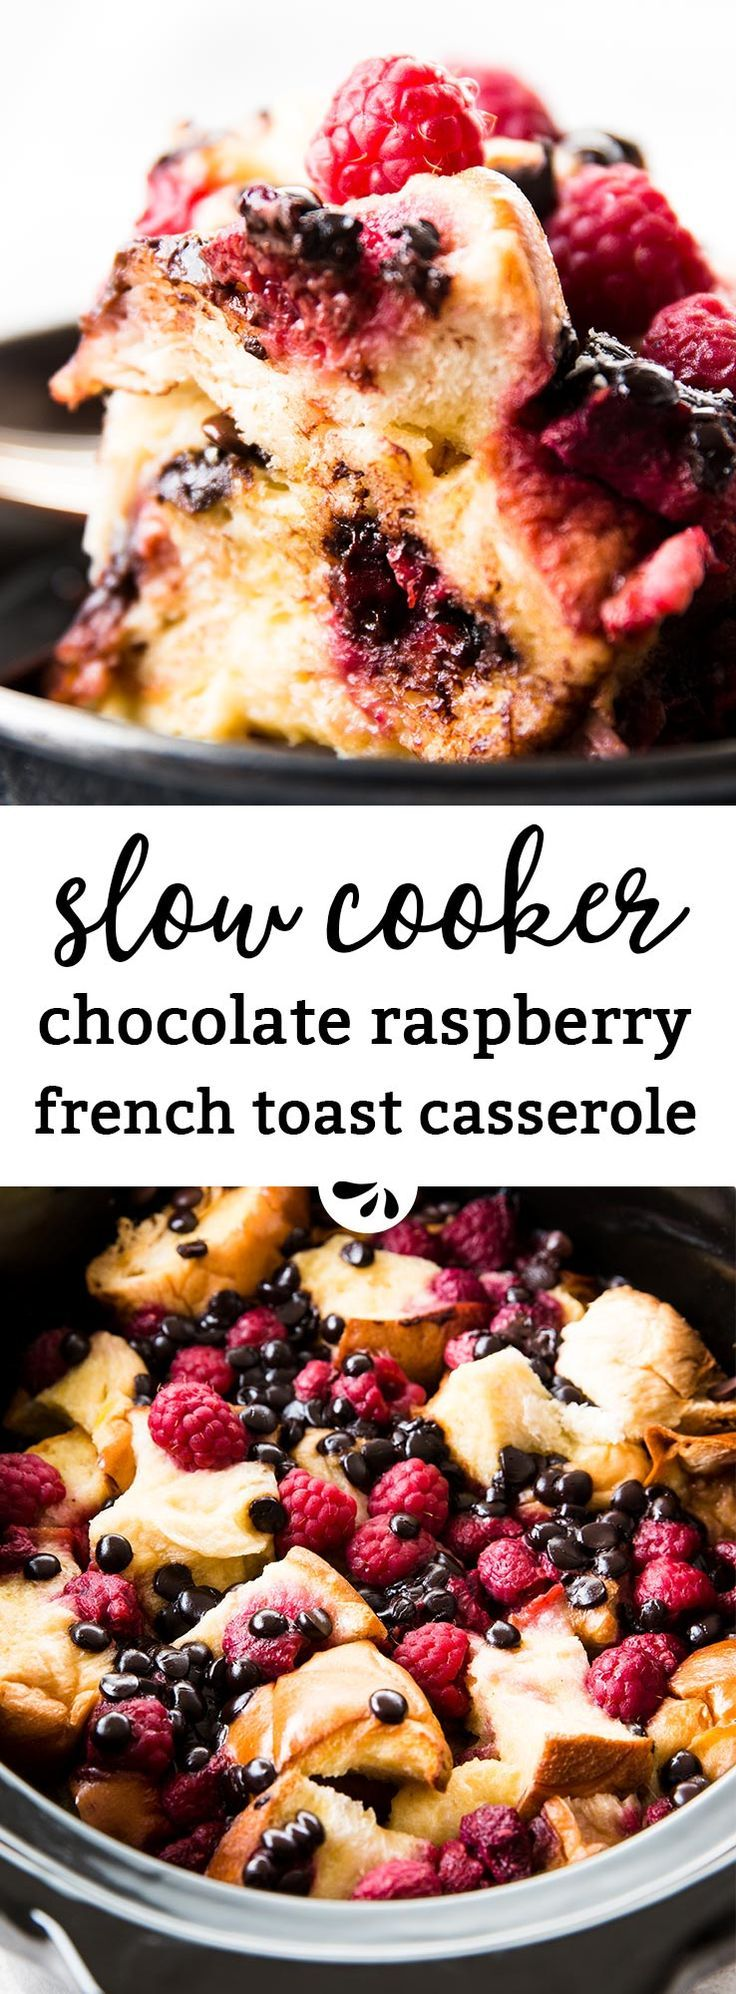 This Crockpot Raspberry Chocolate Chip French Toast Casserole is a simple brunch dish that feels extra special. So decadent with the chocolate and raspberries! It comes together with just a few ingredients and is super easy to prep. You can either make it ahead and leave it to soak overnight, or you can cook it right away - it turns out scrumptious either way. It's the perfect recipe for your spring and summer brunches - Easter, Mother's Day, even on the Fourth of July - it absolutely works…